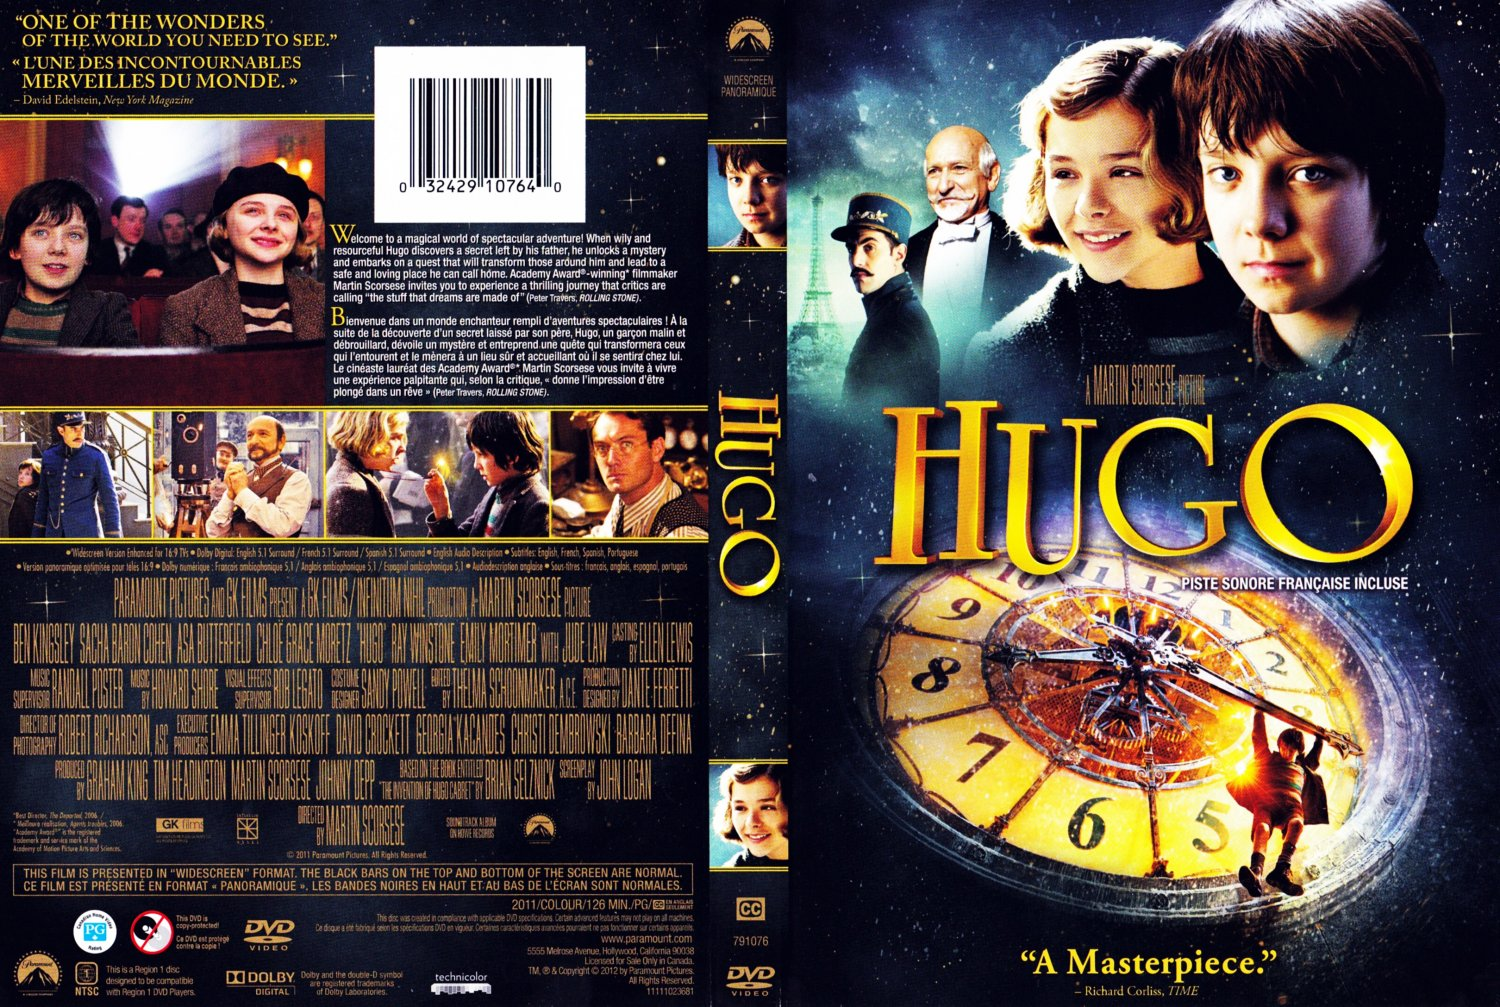 Hugo - Movie DVD Scanned Covers - Hugo - English French :: DVD Covers